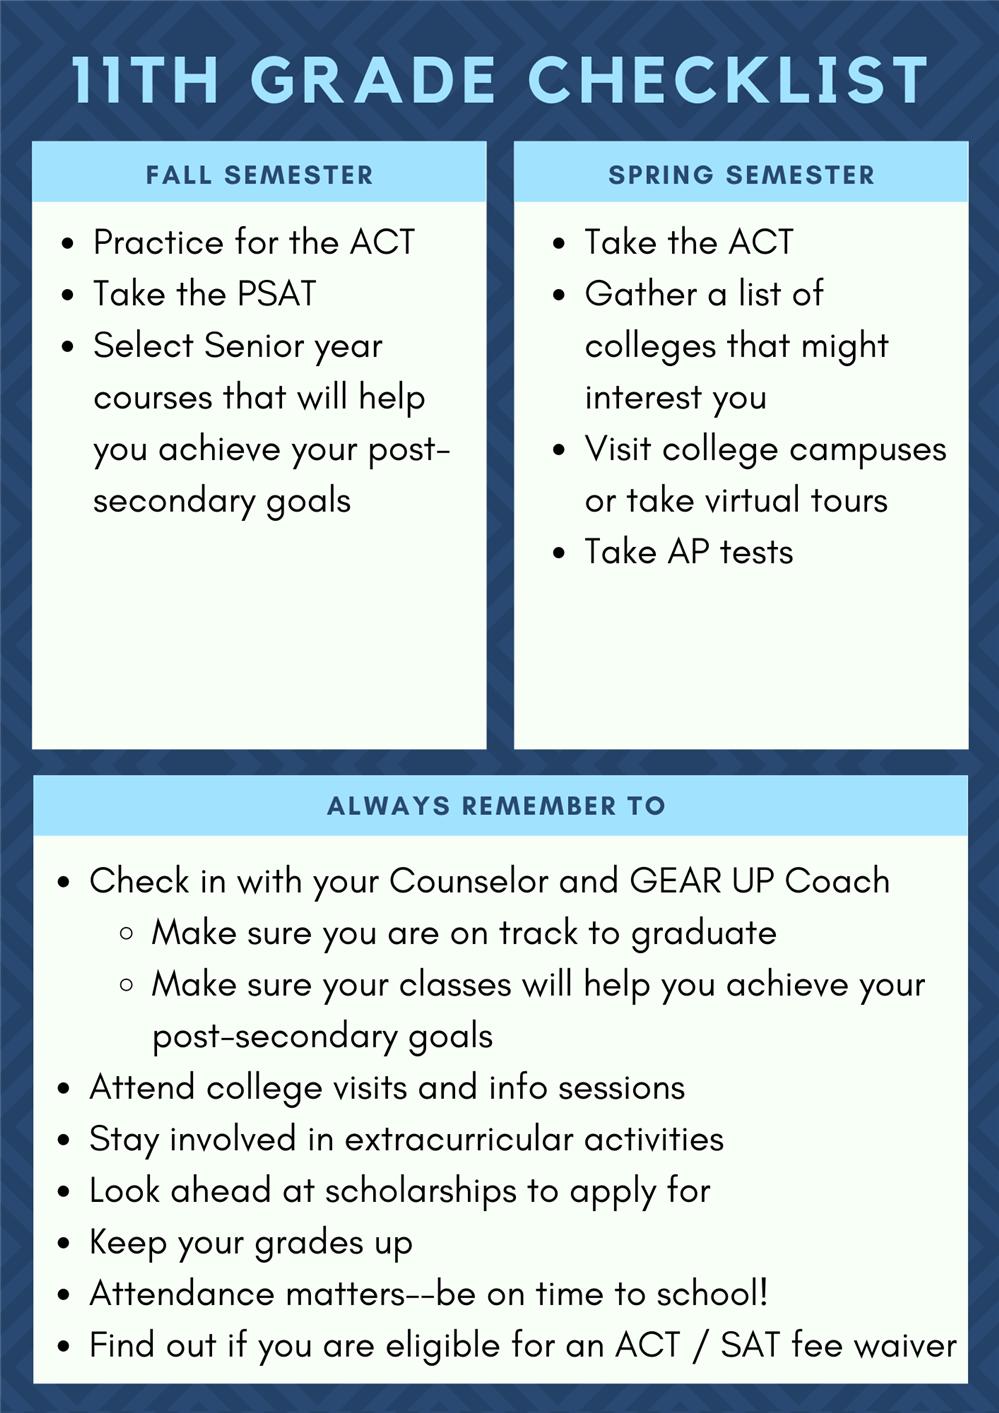 Checklist for 11th graders